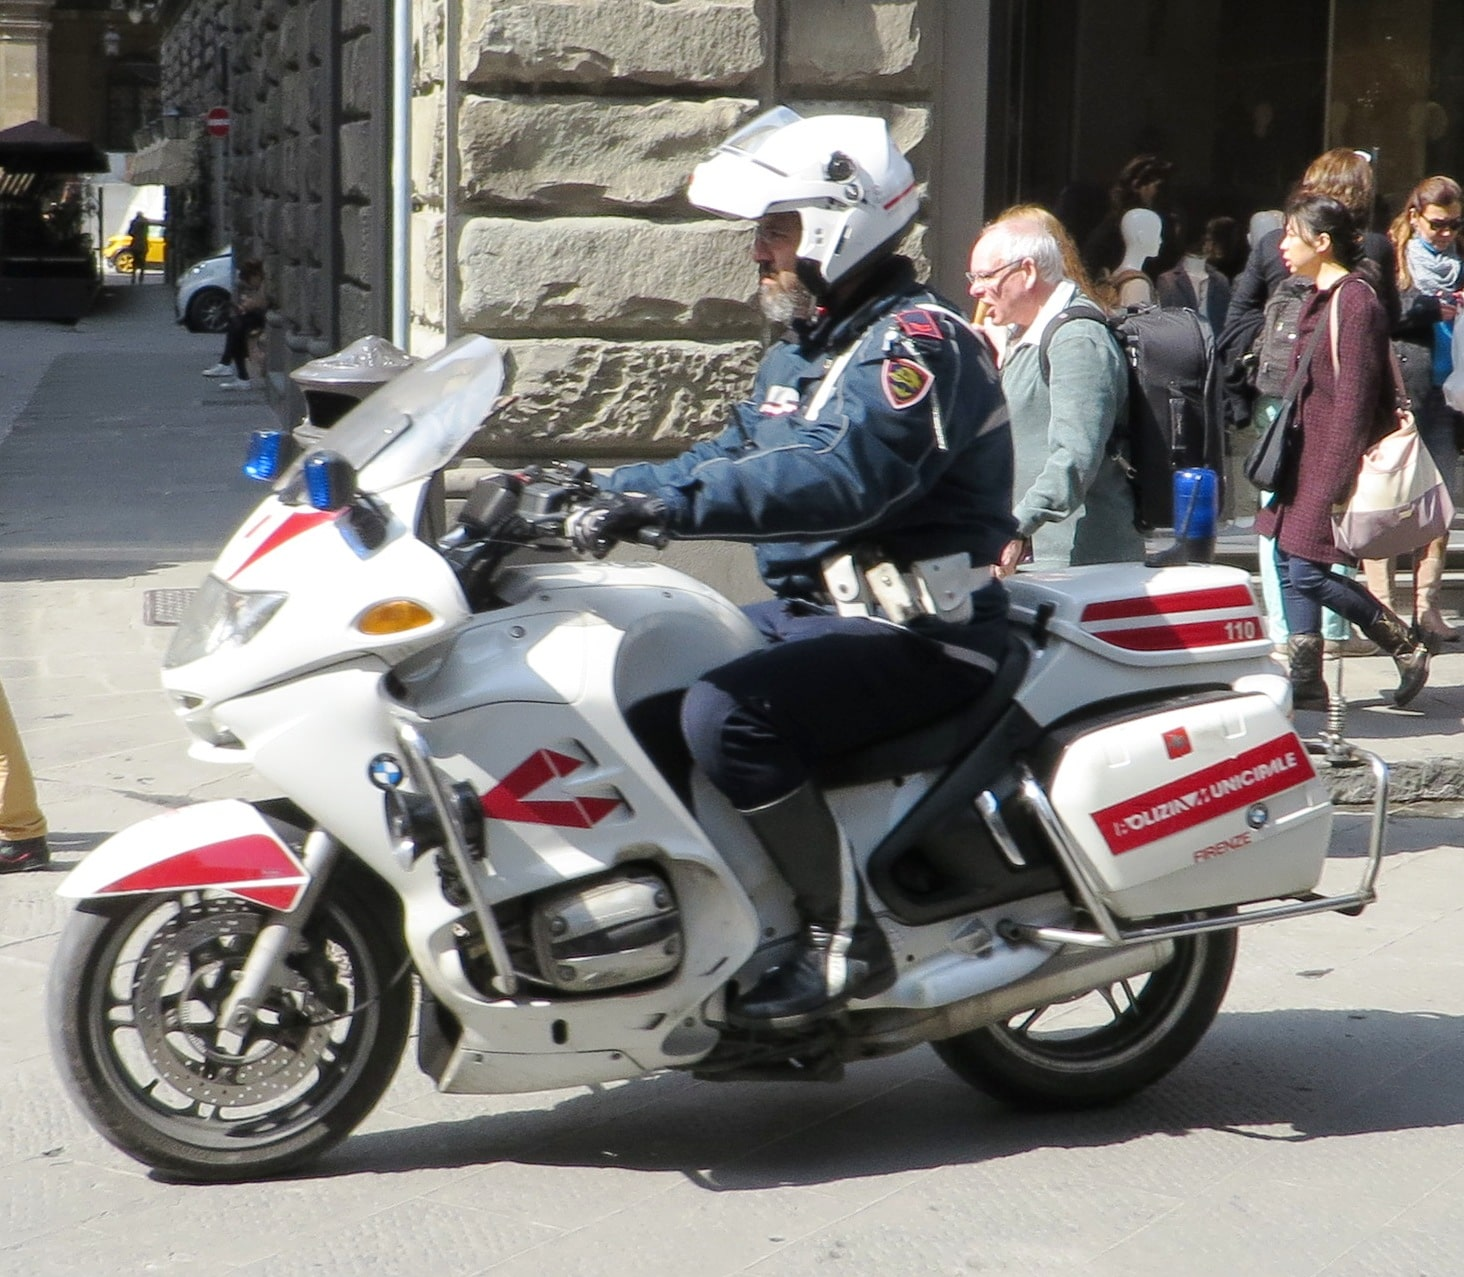 Photo of Stretta sui controlli della Polizia Municipale di Firenze, 1600€ di multe